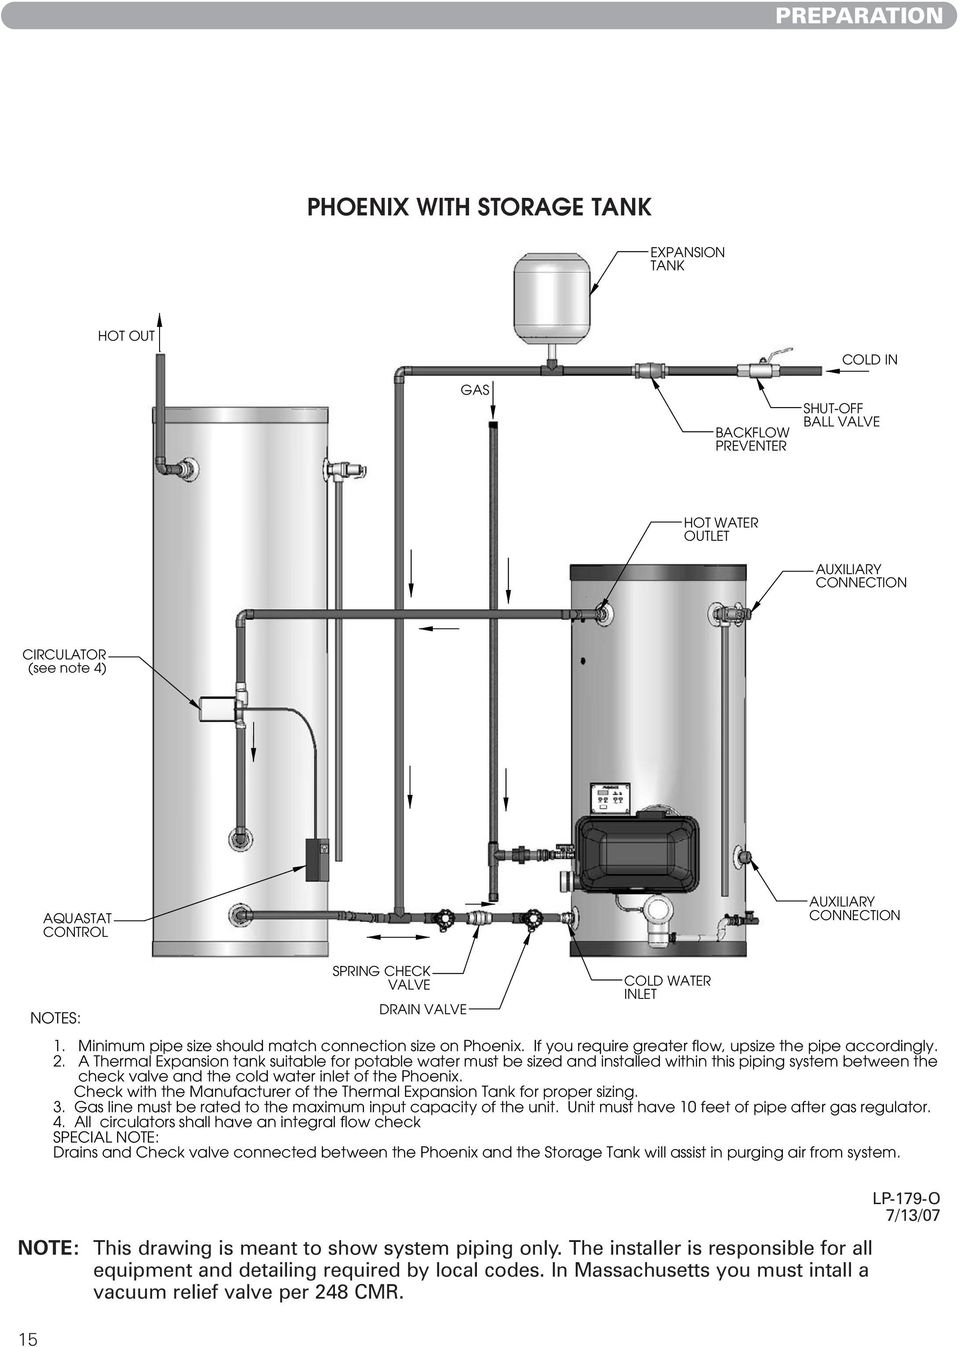 A Thermal Expansion tank suitable for potable water must be sized and installed within this piping system between the check valve and the cold water inlet of the Phoenix.